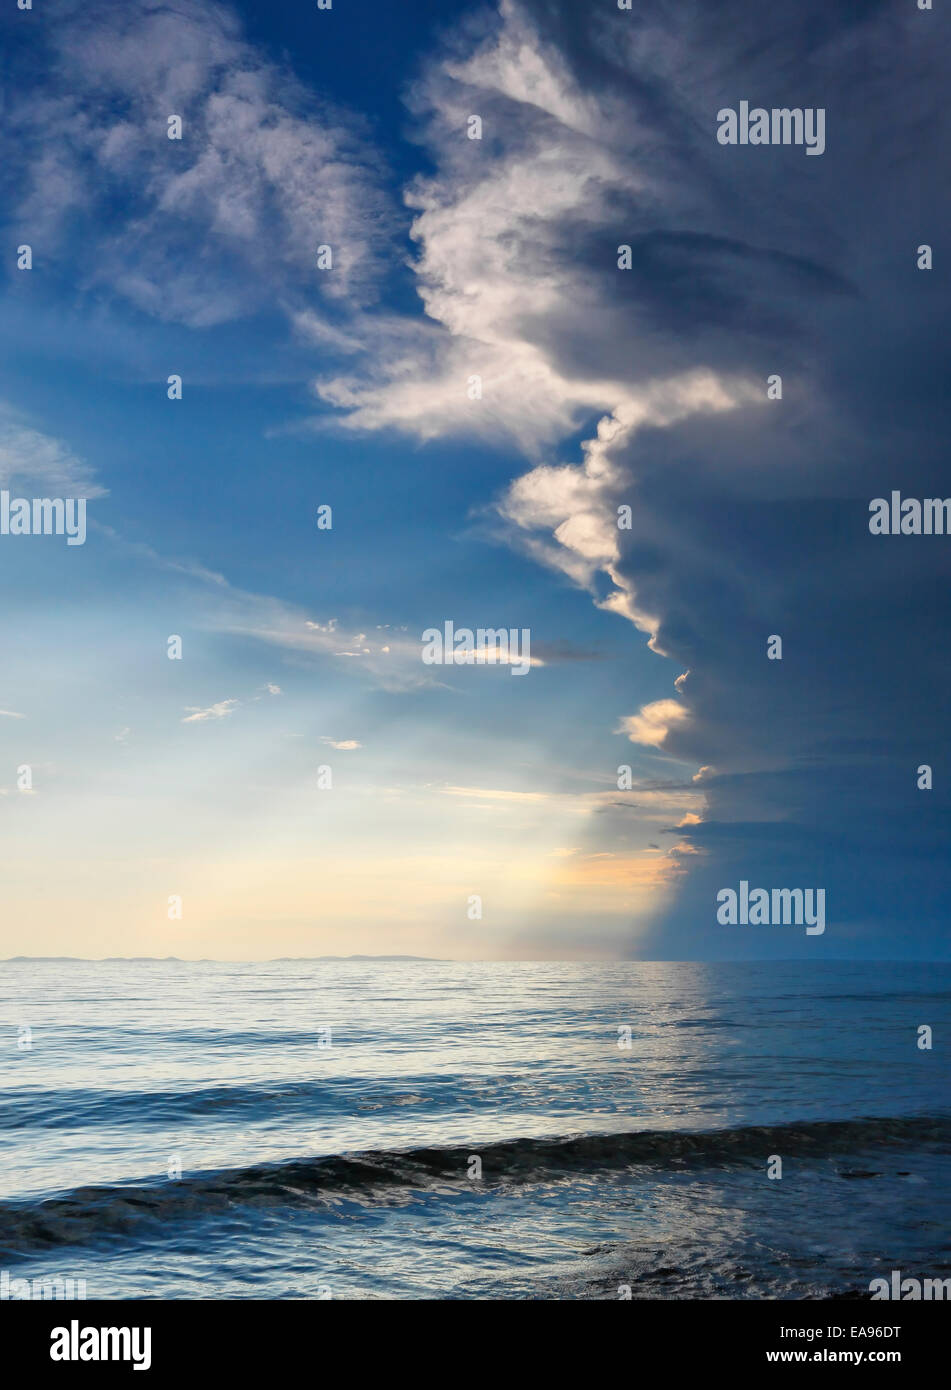 Storm clouds over the ocean - Stock Image